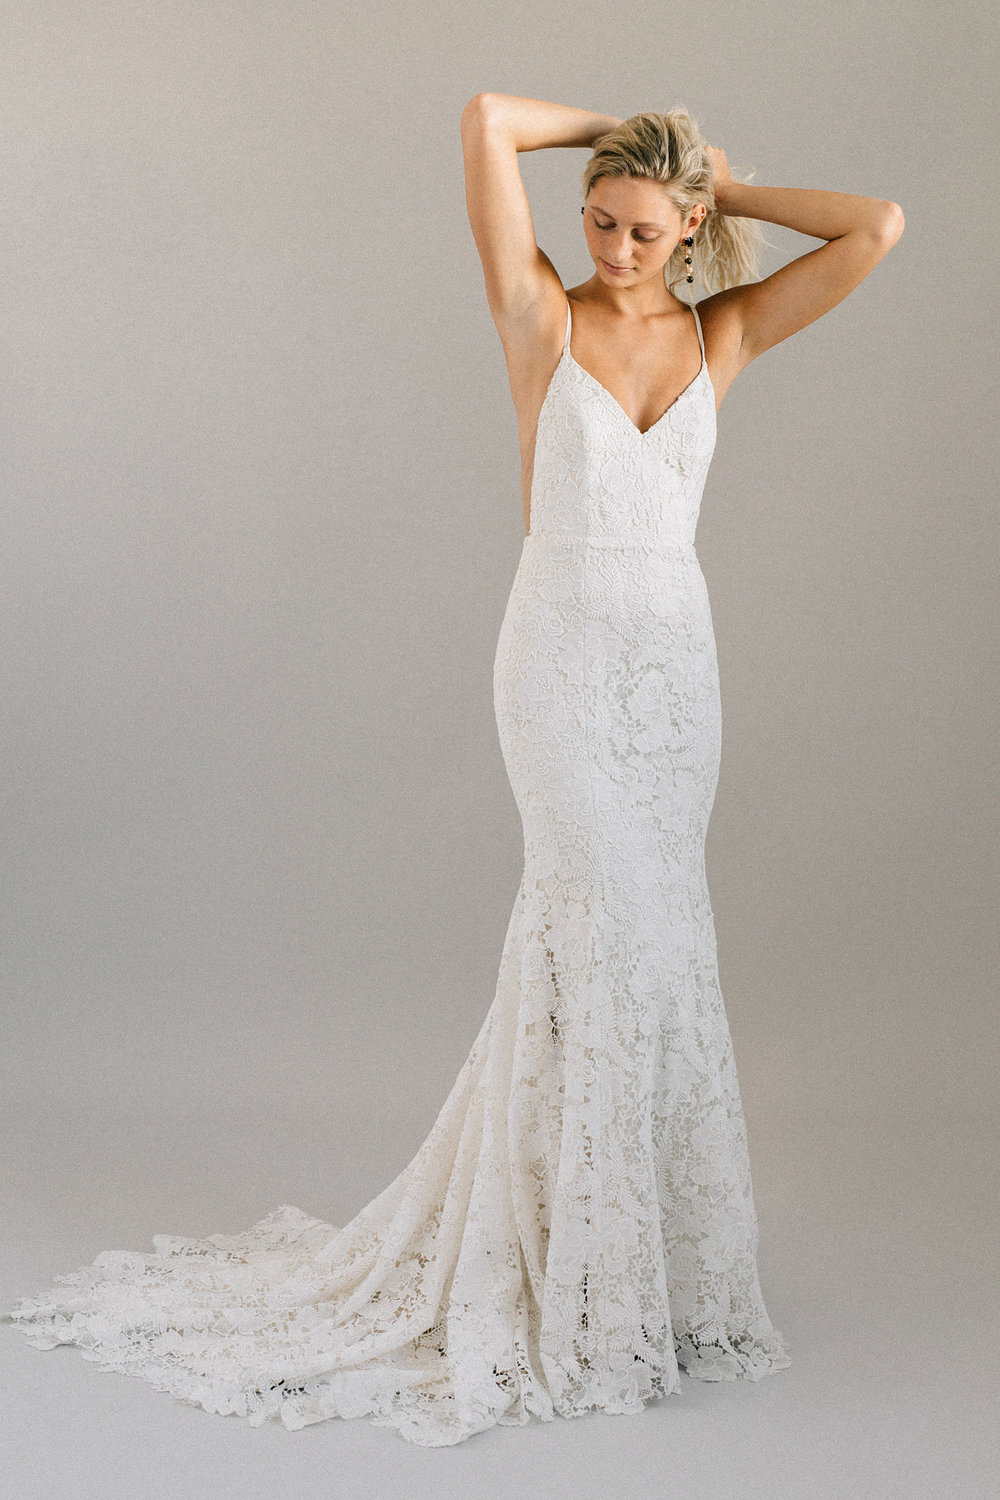 ottawa-wedding-dress-westboro-bridal-store-modern-bride-boutique-revelle-laudae-Abronia-PS2.jpg